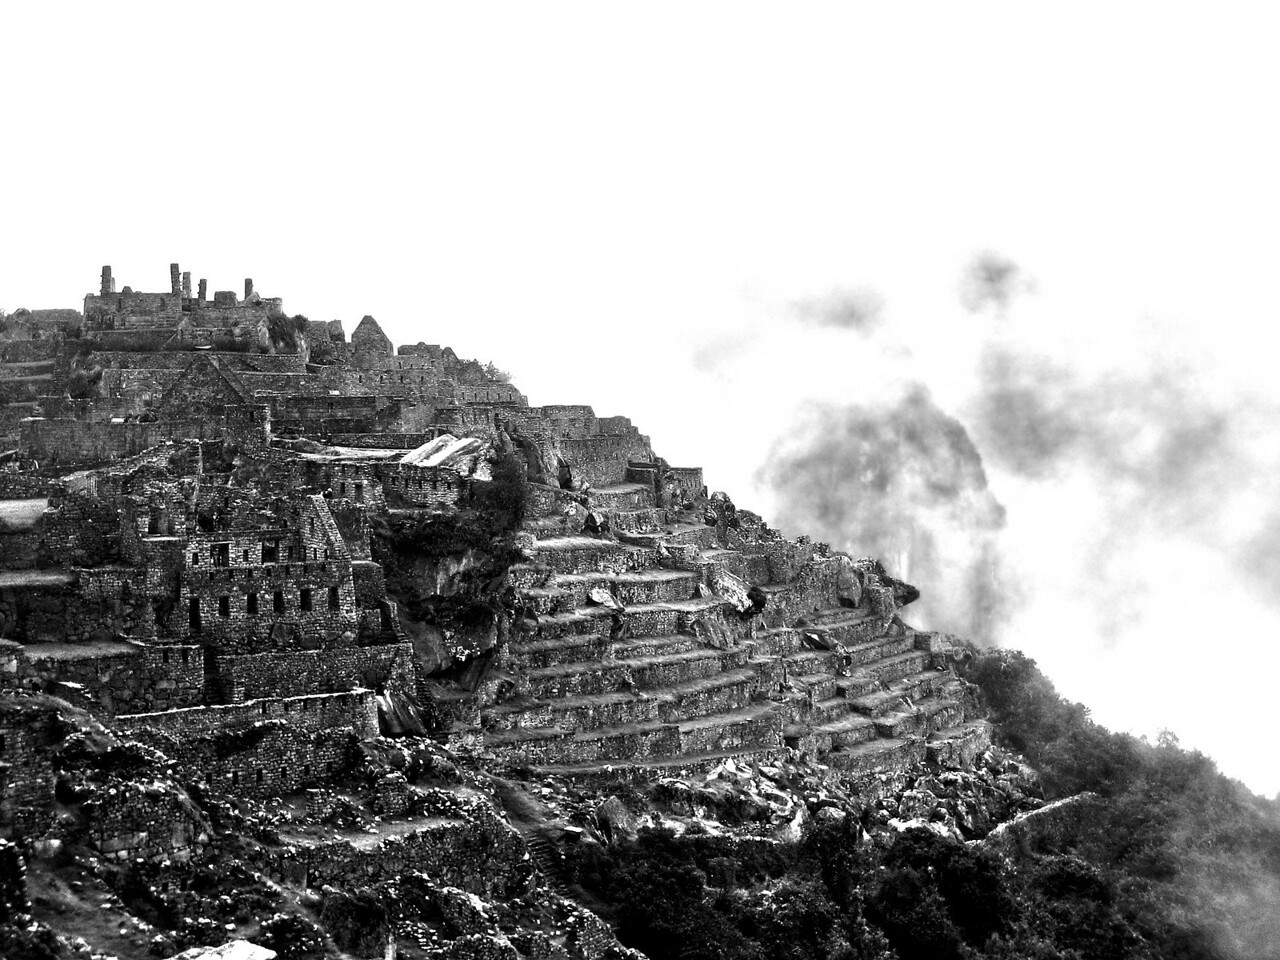 Ancient Machu Picchu  There are certain places in the world that are a requisite visit for any self-respectable traveler. Machu Picchu is one of those places. I am sure you have seen the typical pictures of the ruins nestled at the top of an Andean mountain, so I offer you a different perspective of this gorgeous vestige of civilization.  I was in the middle of a two month trip through South America and had recently met up with my two brothers in Ecuador before flying into Cusco to begin the four-day Inca trail hike. We had arrived the same day that we were to start the hike and the only one who was prepared for the sub-zero temperatures was my older brother. In true style, my younger brother and I were just relying heavily on luck and the generosity of others. =) There is a lot more to the story, including a doggie peeing on us while we slept, a whirlwind romance with a llama and some unfortunate emergency defecation on the Andes. It is just not a good trip unless you get a good poopie story out of it. Wait until you hear my Bolivia story … but, let's just leave that for another time. Needless to say we were the last ones to start the hike and the first ones to make the manly entrance into Machu Picchu. We pride ourselves on being stubbornly determined about these things.  When we arrived we were greeted by a thick cover of fog that obscured the entire site. It might as well have been Martha Stewart's vineyard for all we were able to discern from our vantage point. We had to wait until the fog burned off a bit so we took the opportunity to video tape ourselves making fools of … ourselves (and thus the Machu Picchu crab walk was born). When we were finally able to run around the ruins we quickly got lost in a labyrinth of stone passages and tried to soak it all in. You end up floating around from one place to the next imagining what the ancient Incas must have been like and what it must have felt like to be the race who lived in a city so close to the heavens. Not e